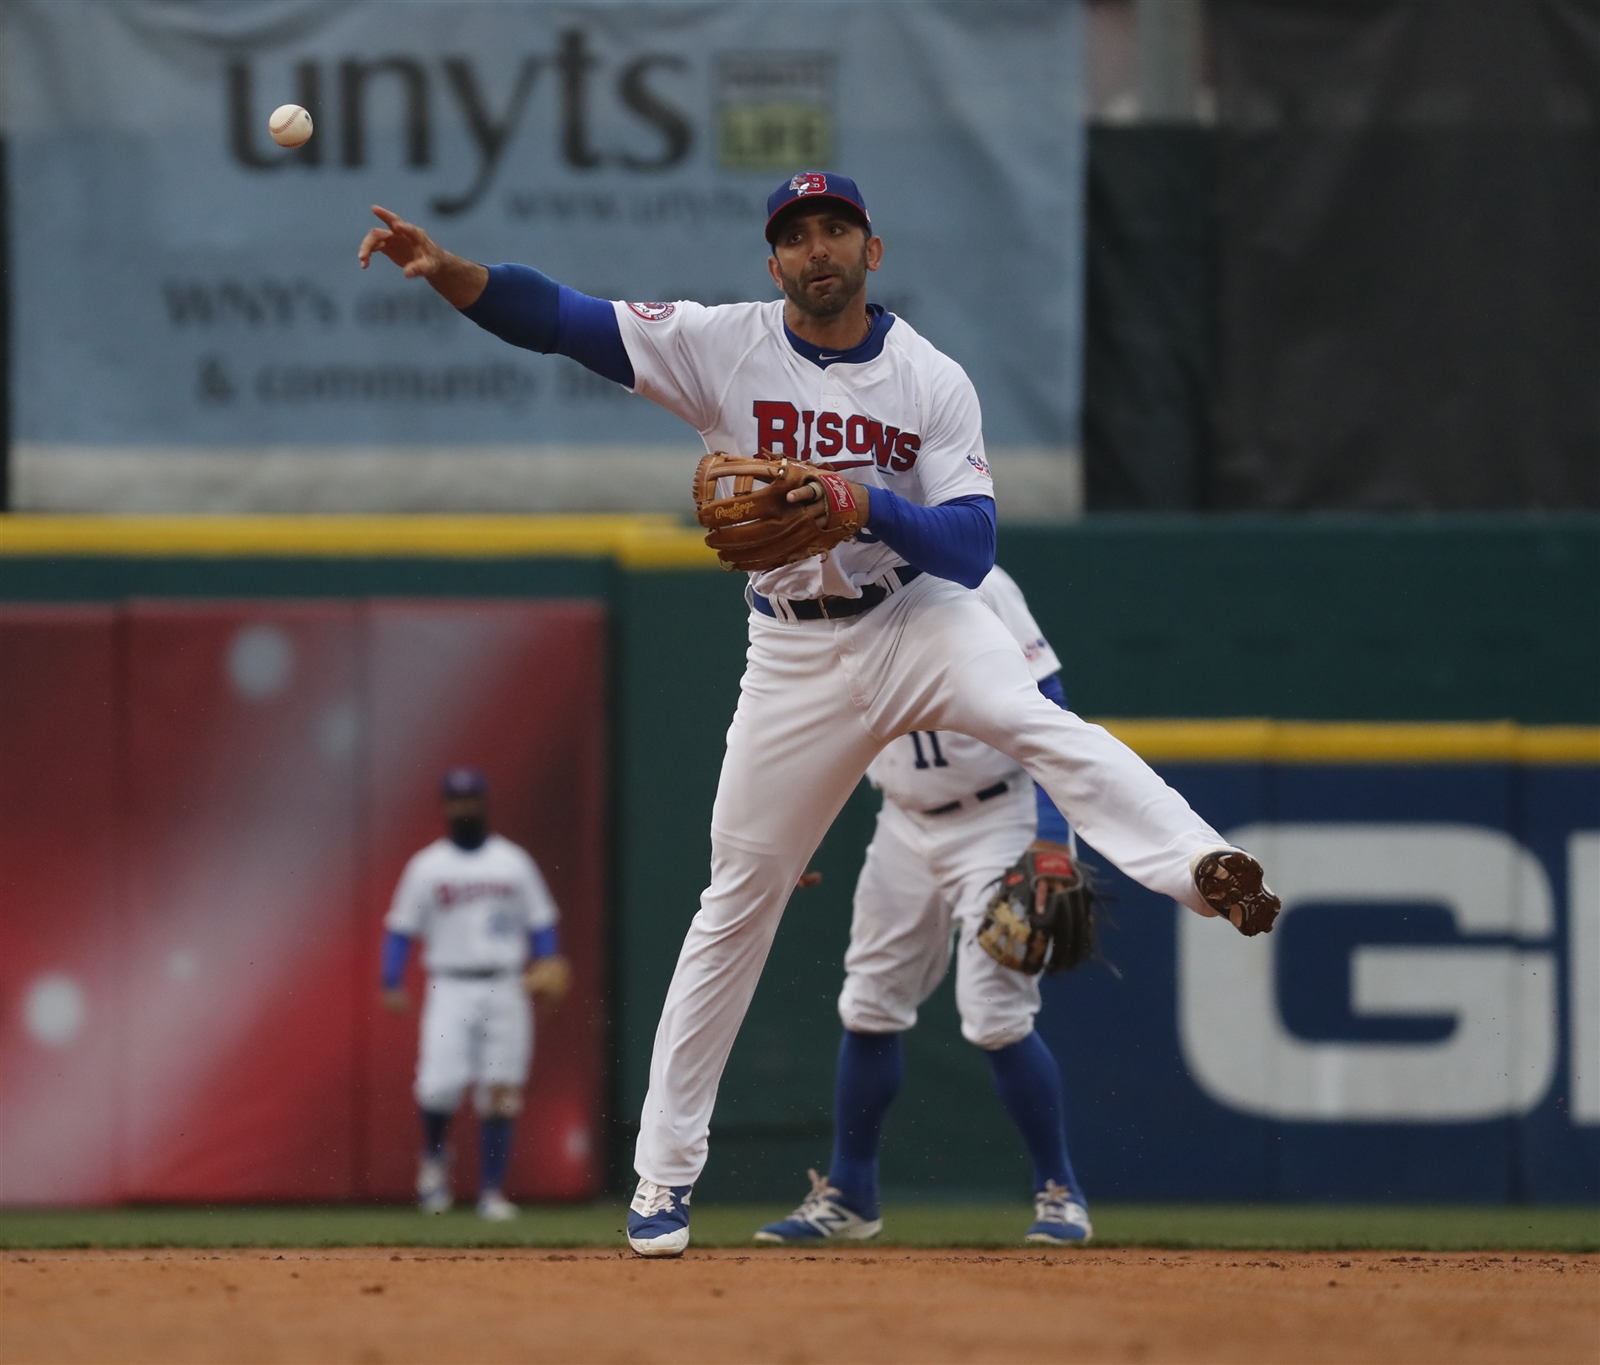 Jason Leblebijian's two-RBI double in the eighth gave the Bisons much-needed insurance. (Harry Scull Jr./Buffalo News File Photo)